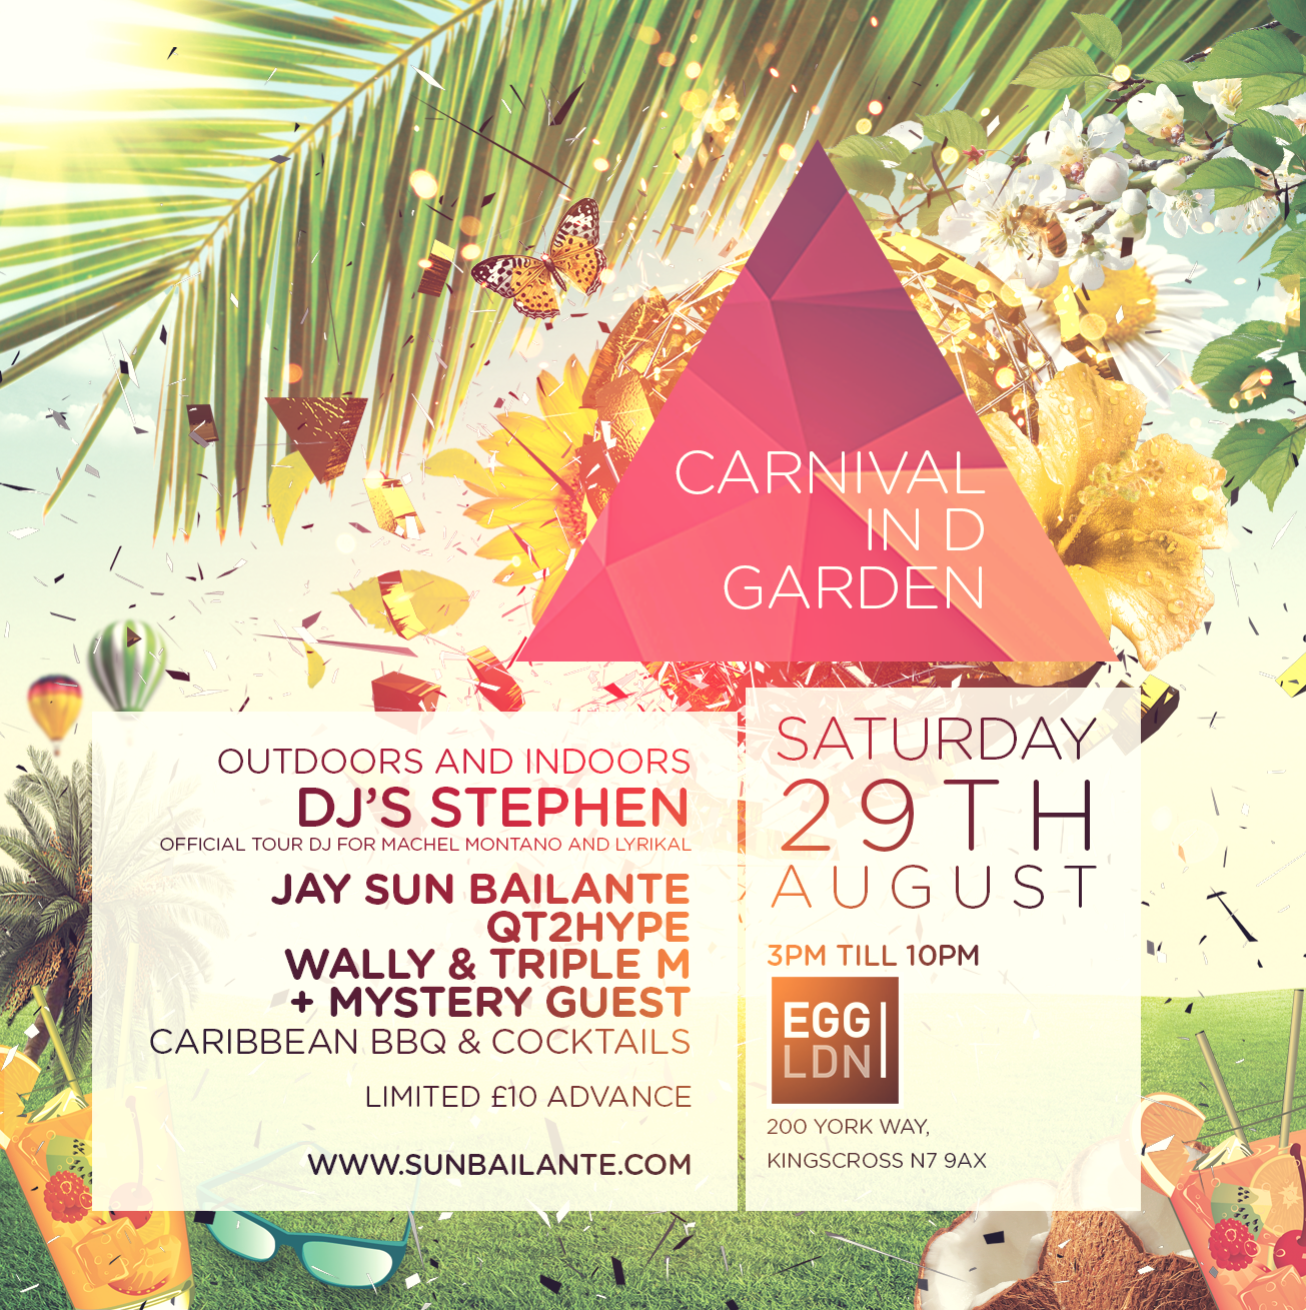 Carnival party in d garden notting hill 2015 tickets egg for Hip hop fish chicken menu